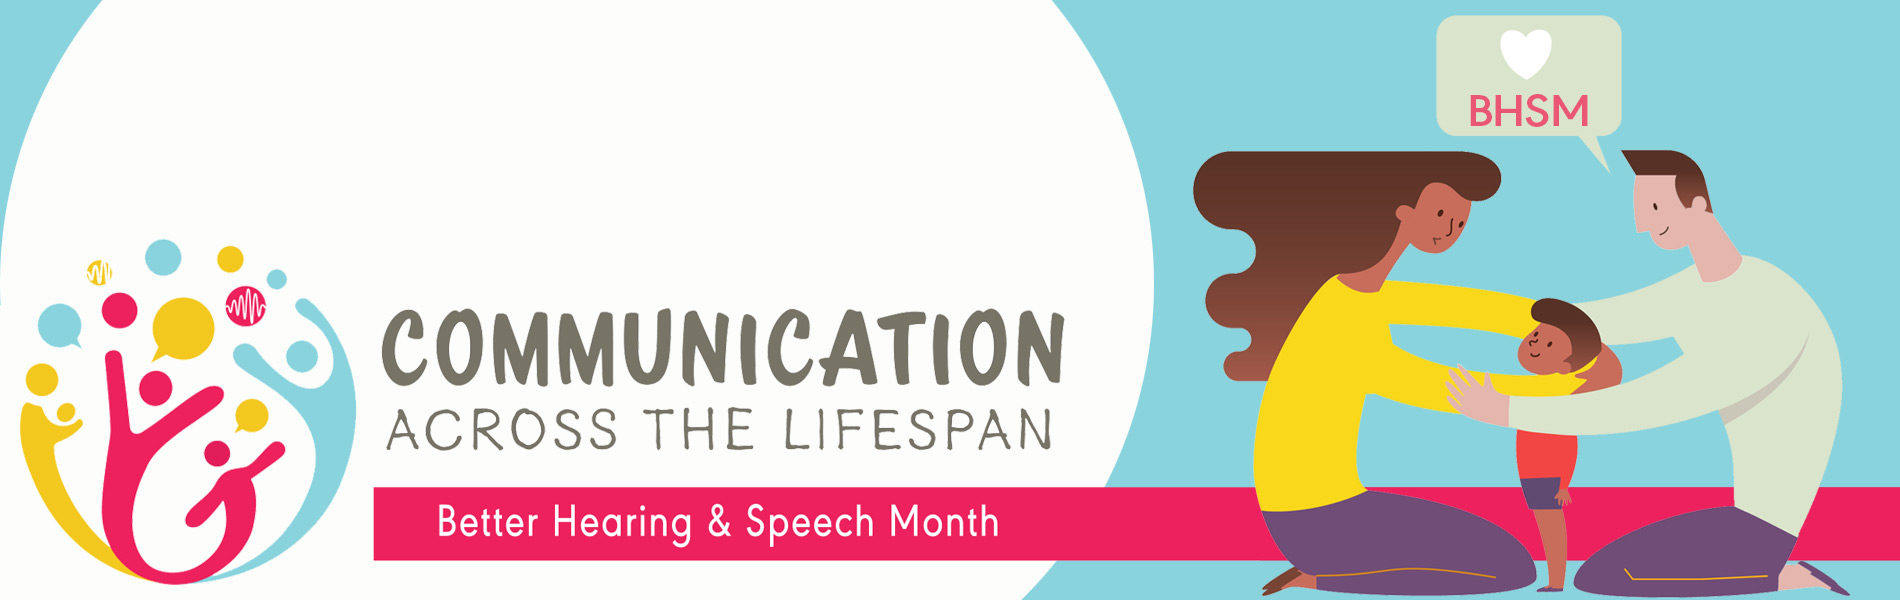 Communication across the lifespan graphic